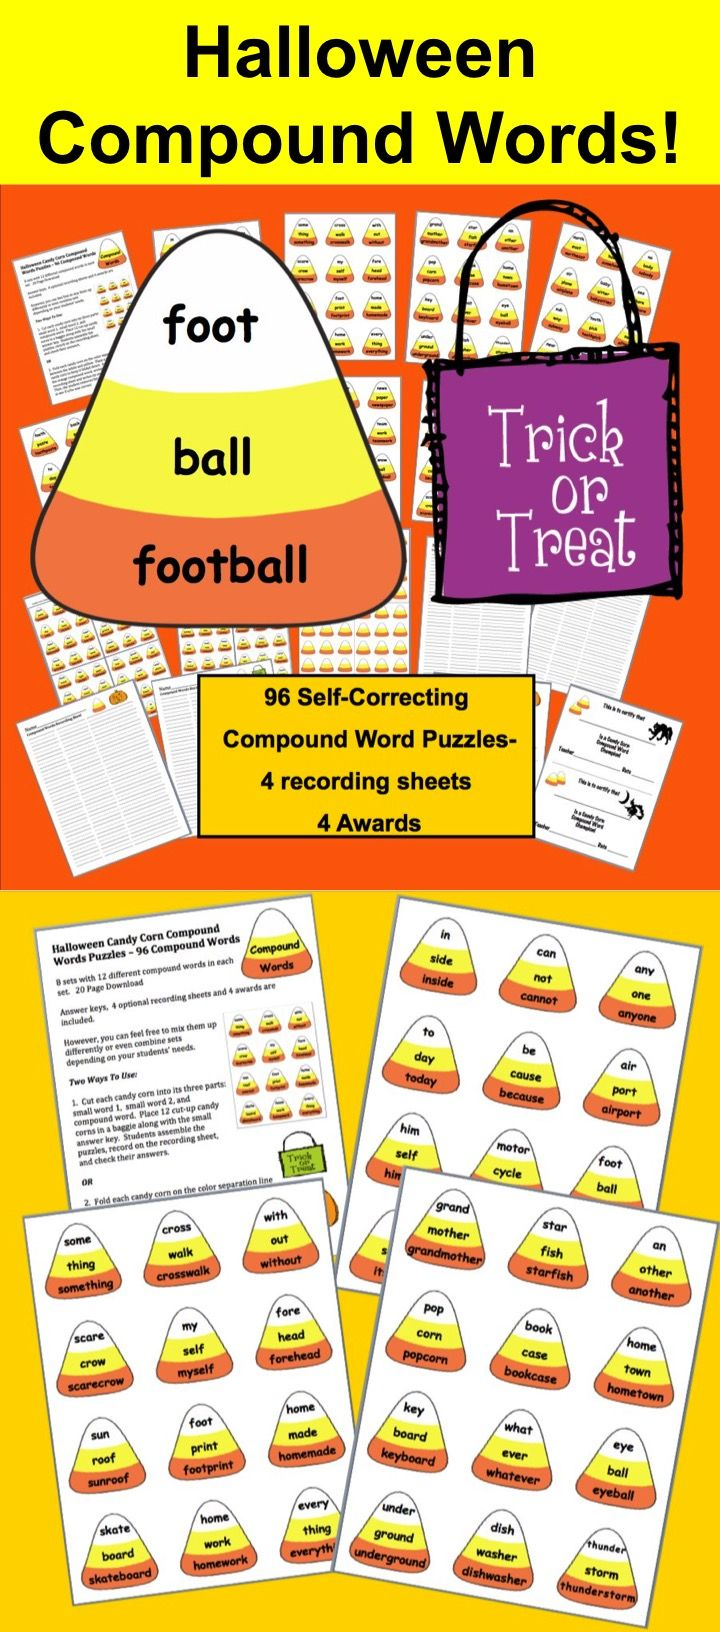 Halloween Activities for Kids, Halloween Language Arts, Halloween Candy Corn Compound Word Puzzles